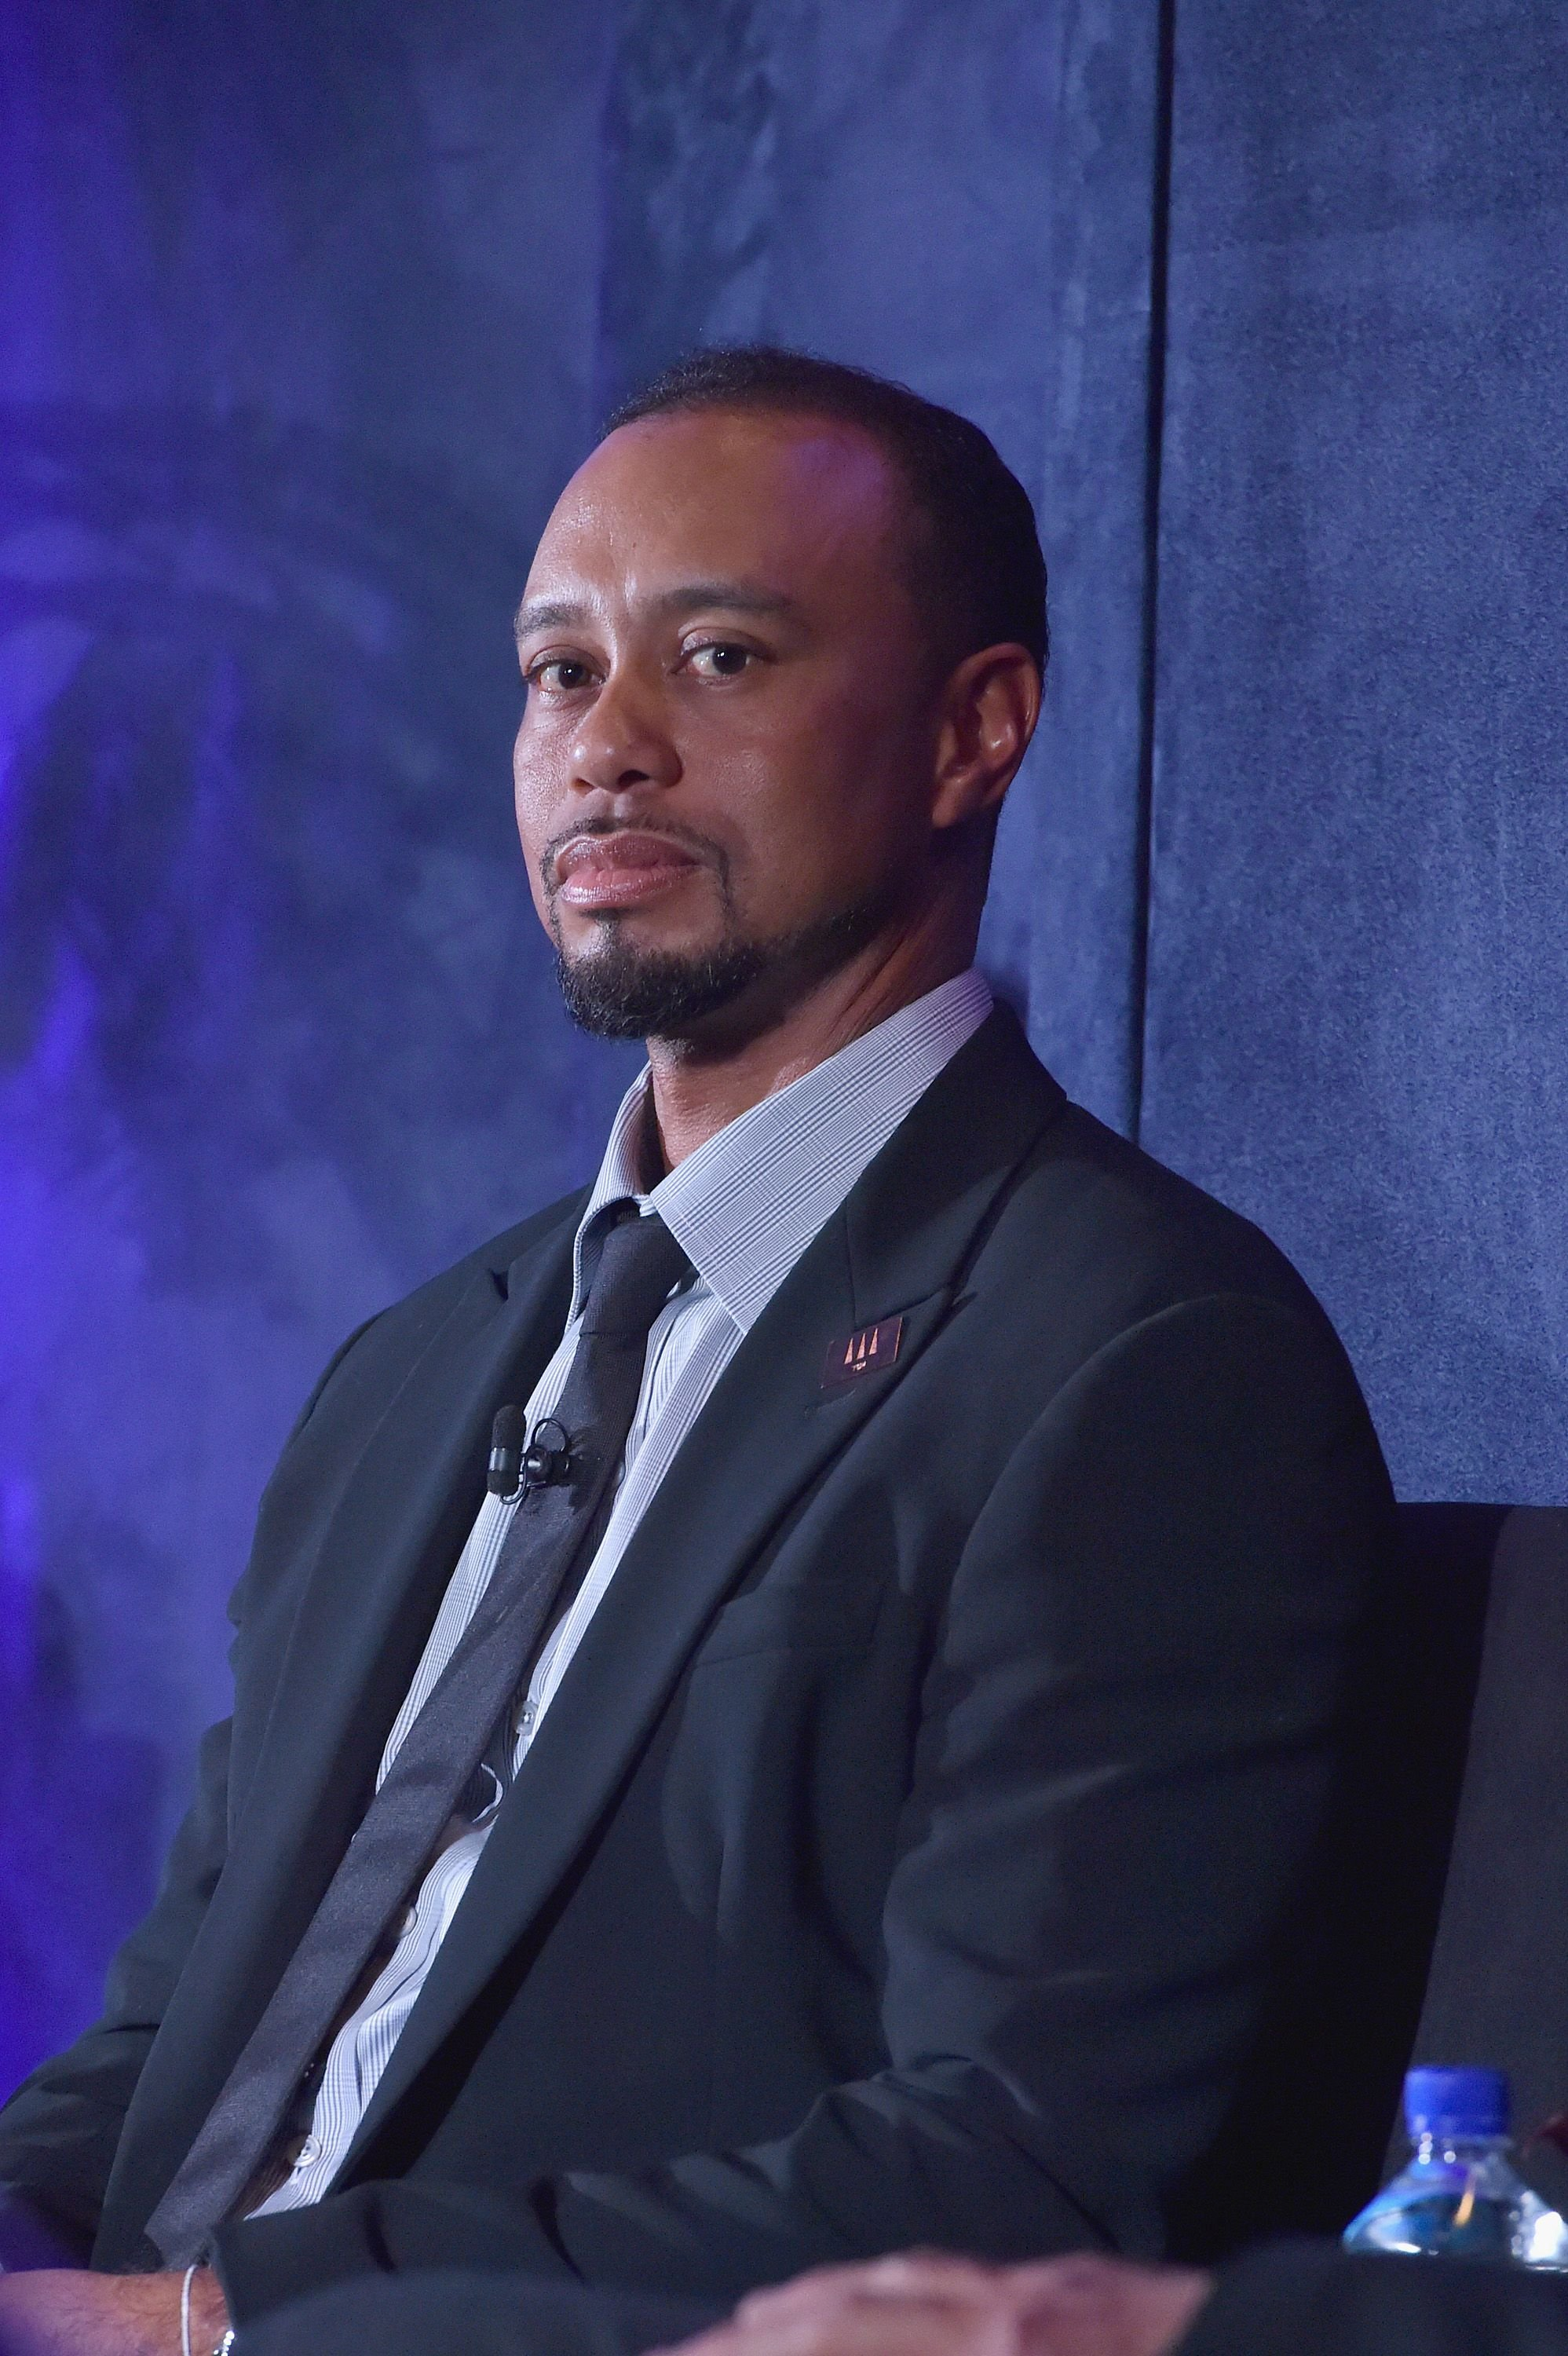 Tiger Woods onstage for the Tiger Woods Foundation's 20th anniversary celebration at the New York Public Library on October 20, 2016 in New York City. | Photo: Getty Images